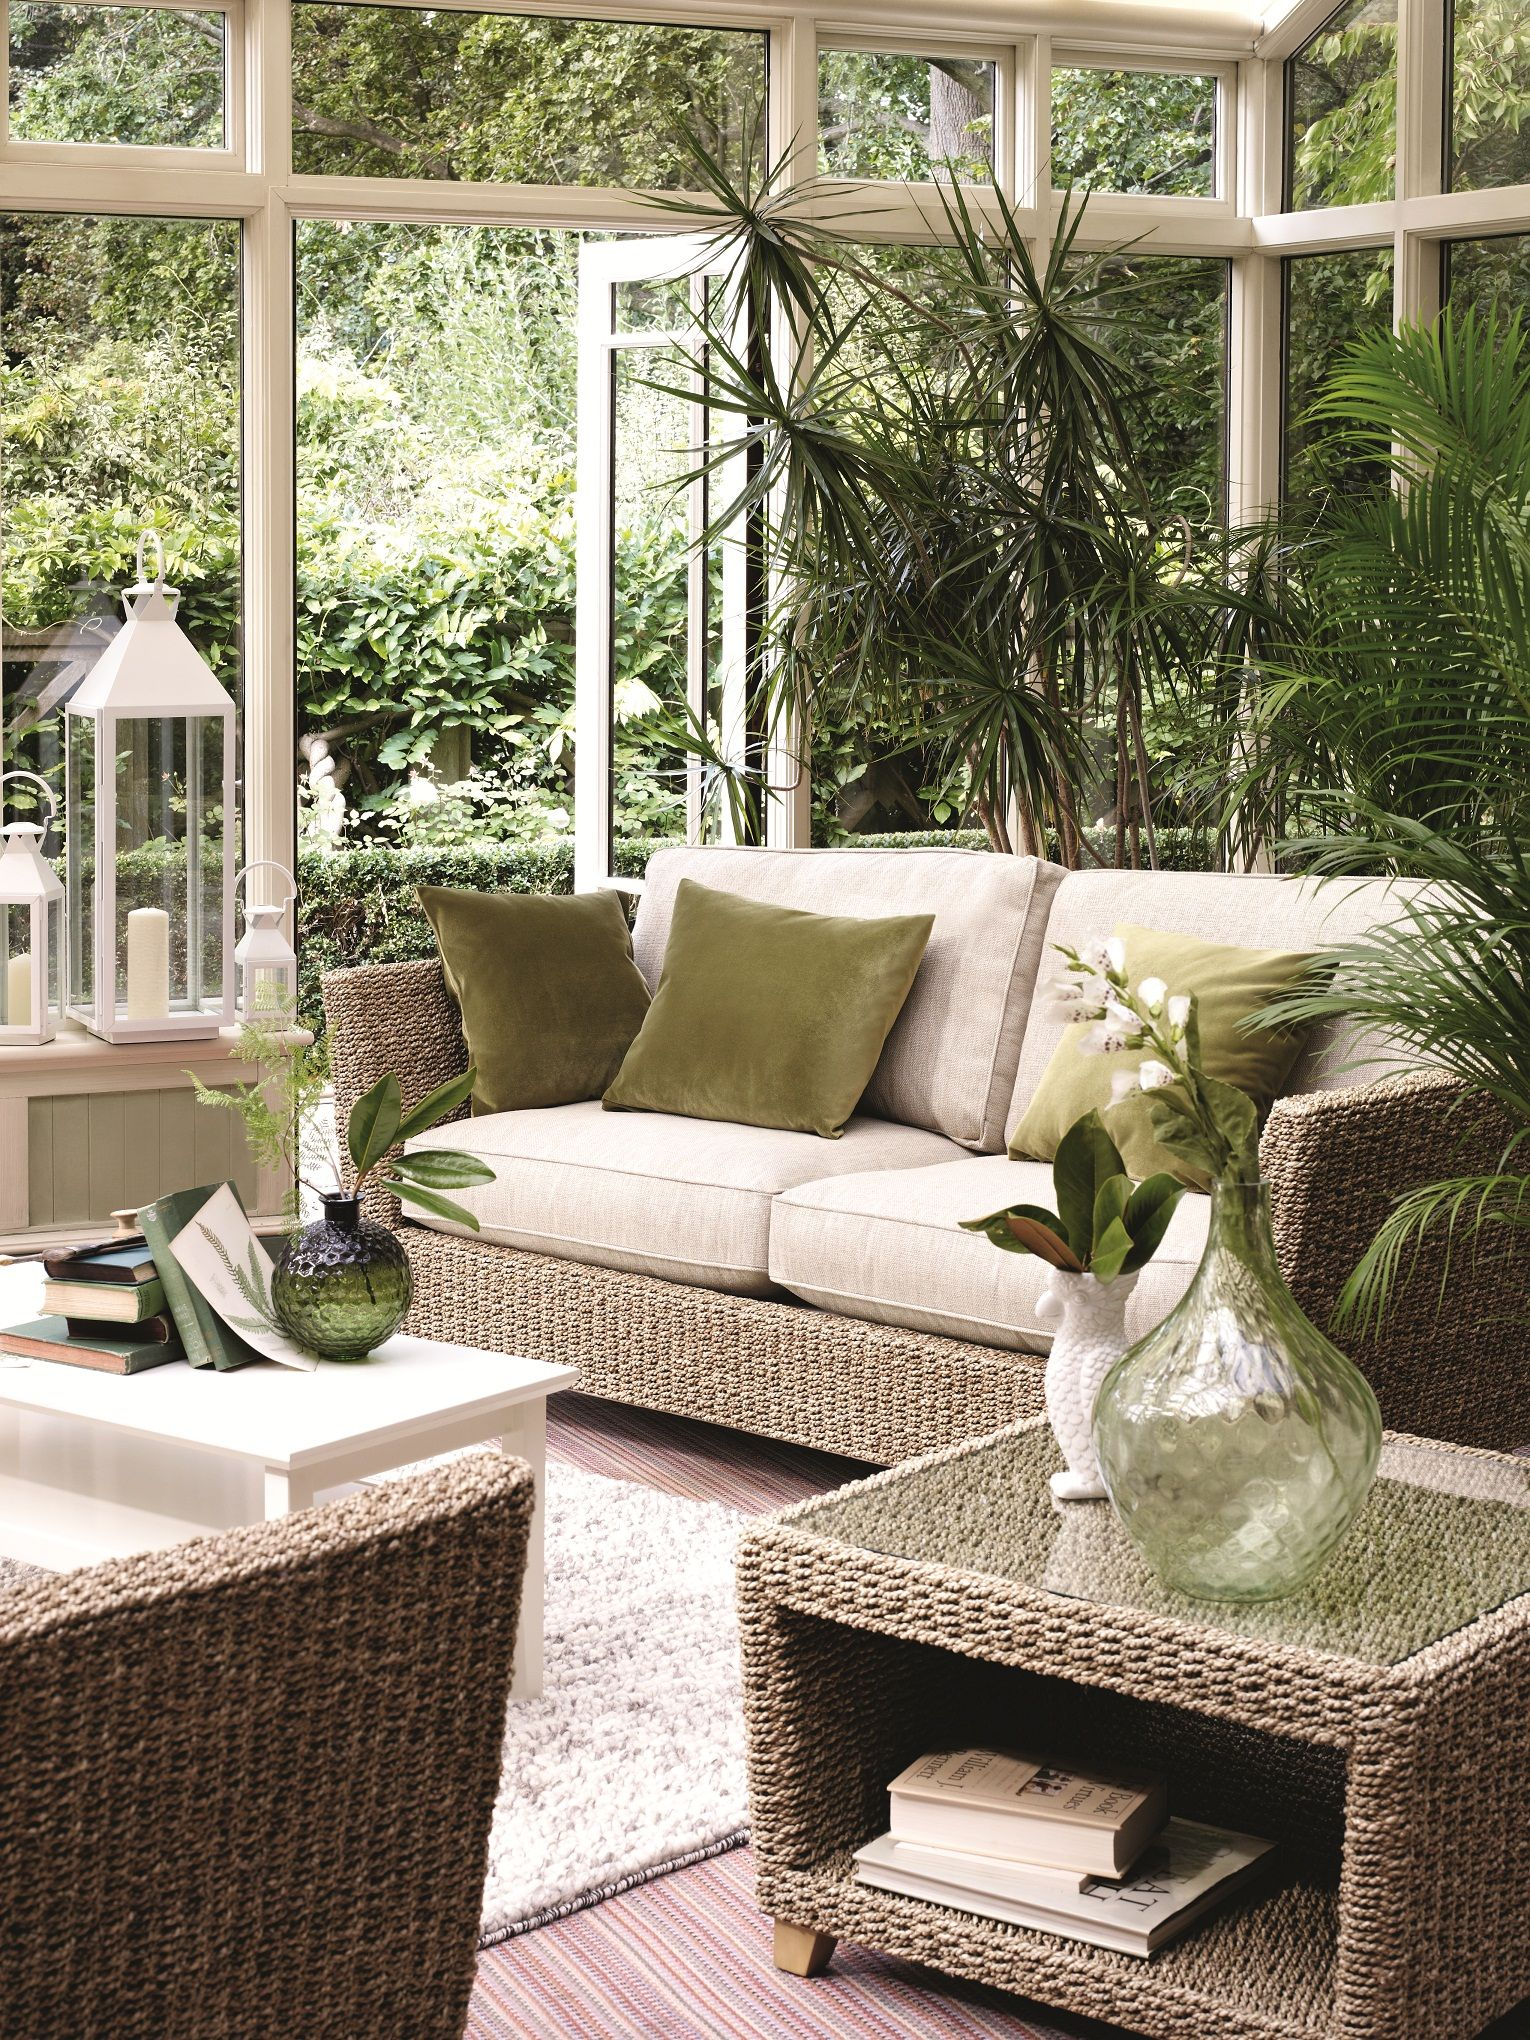 Window ideas for a sunroom  be at one with nature  letus talk about the conservatory